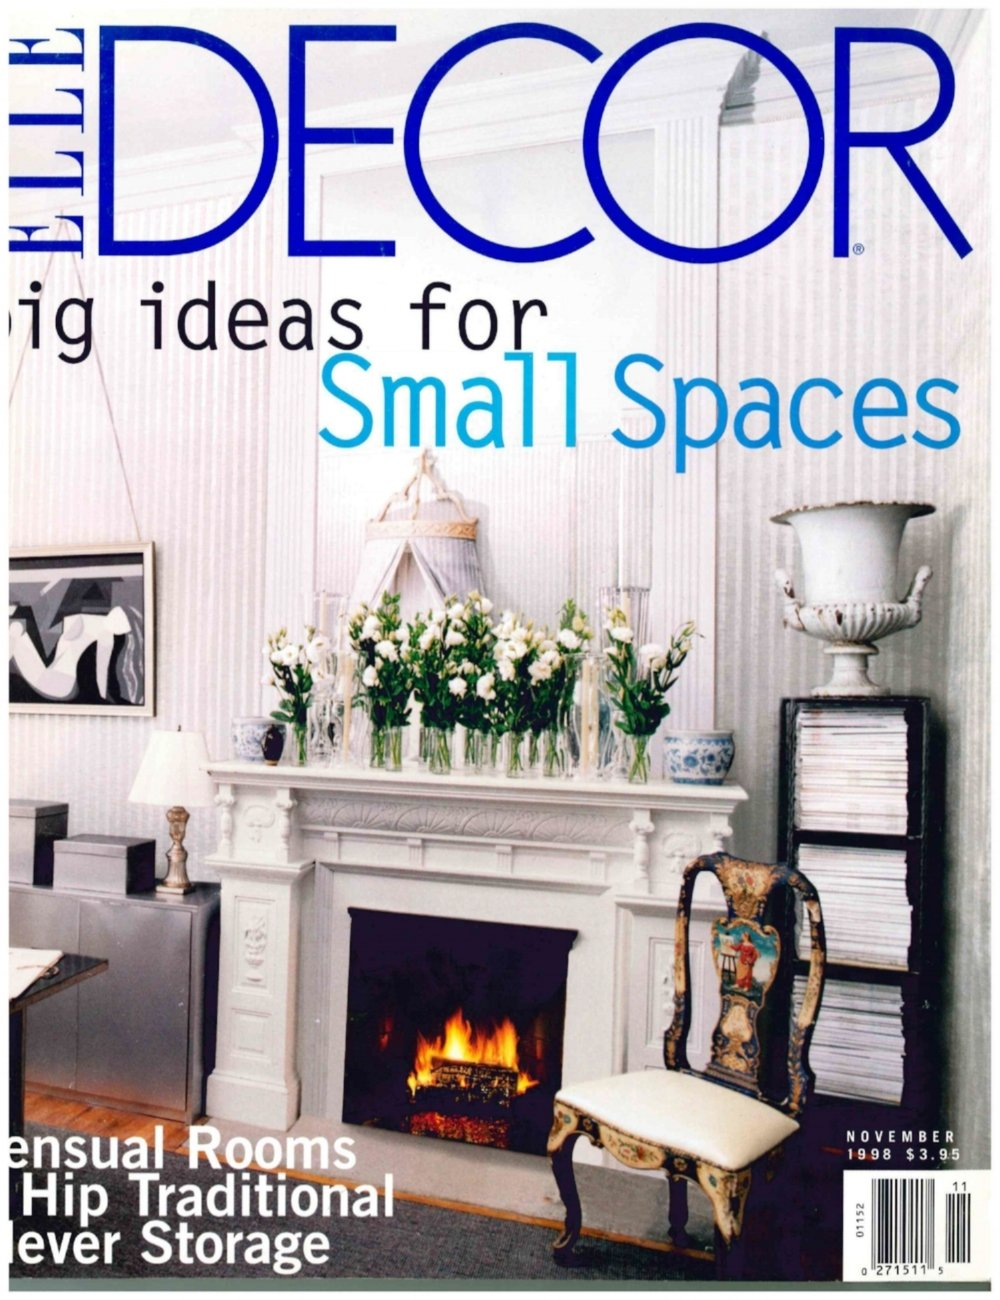 Elle Decor - Nov 1998 Cover.jpg